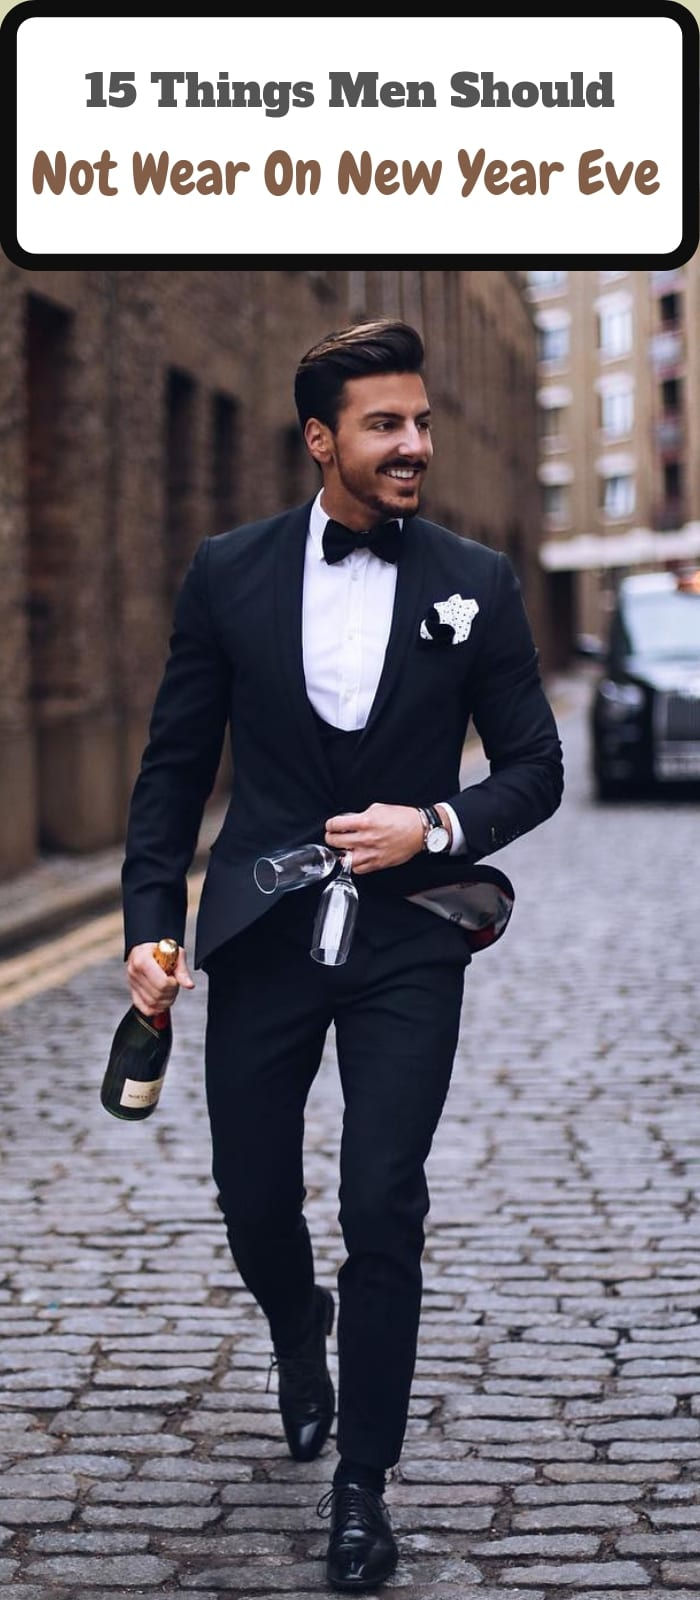 15 Things Men Should Not Wear On New Year Eve!